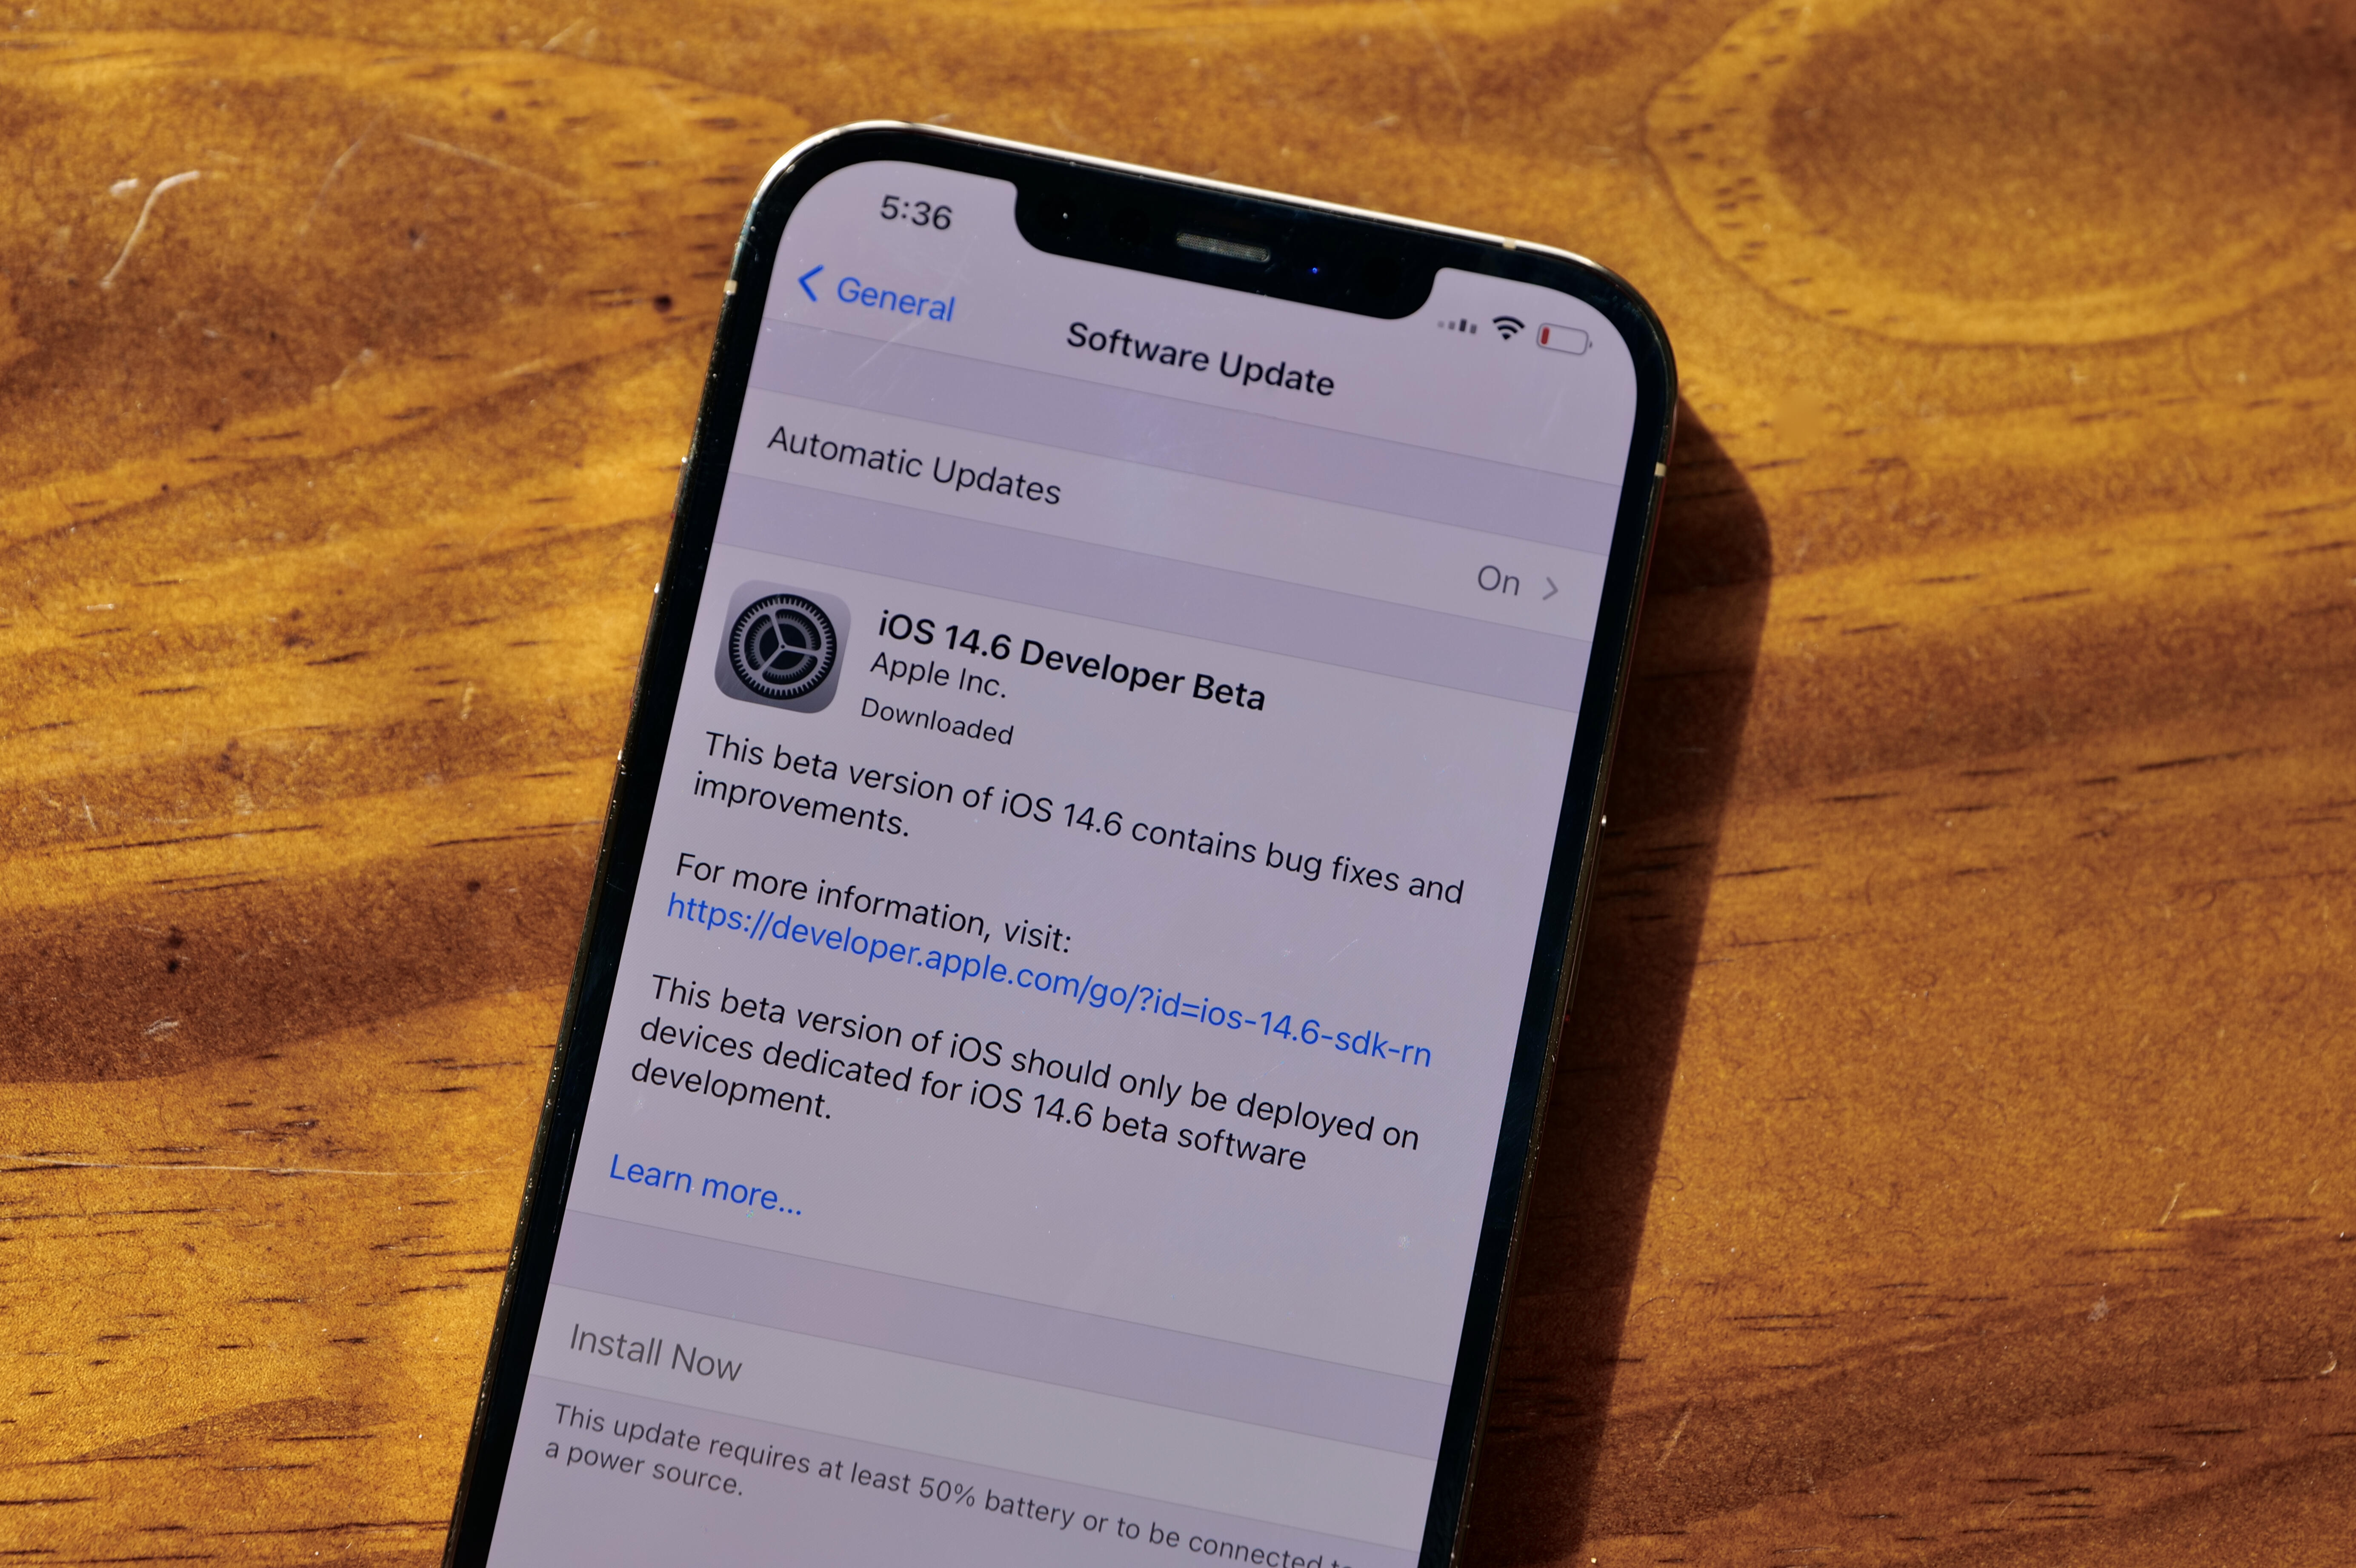 iOS 14.6 beta for iPhone